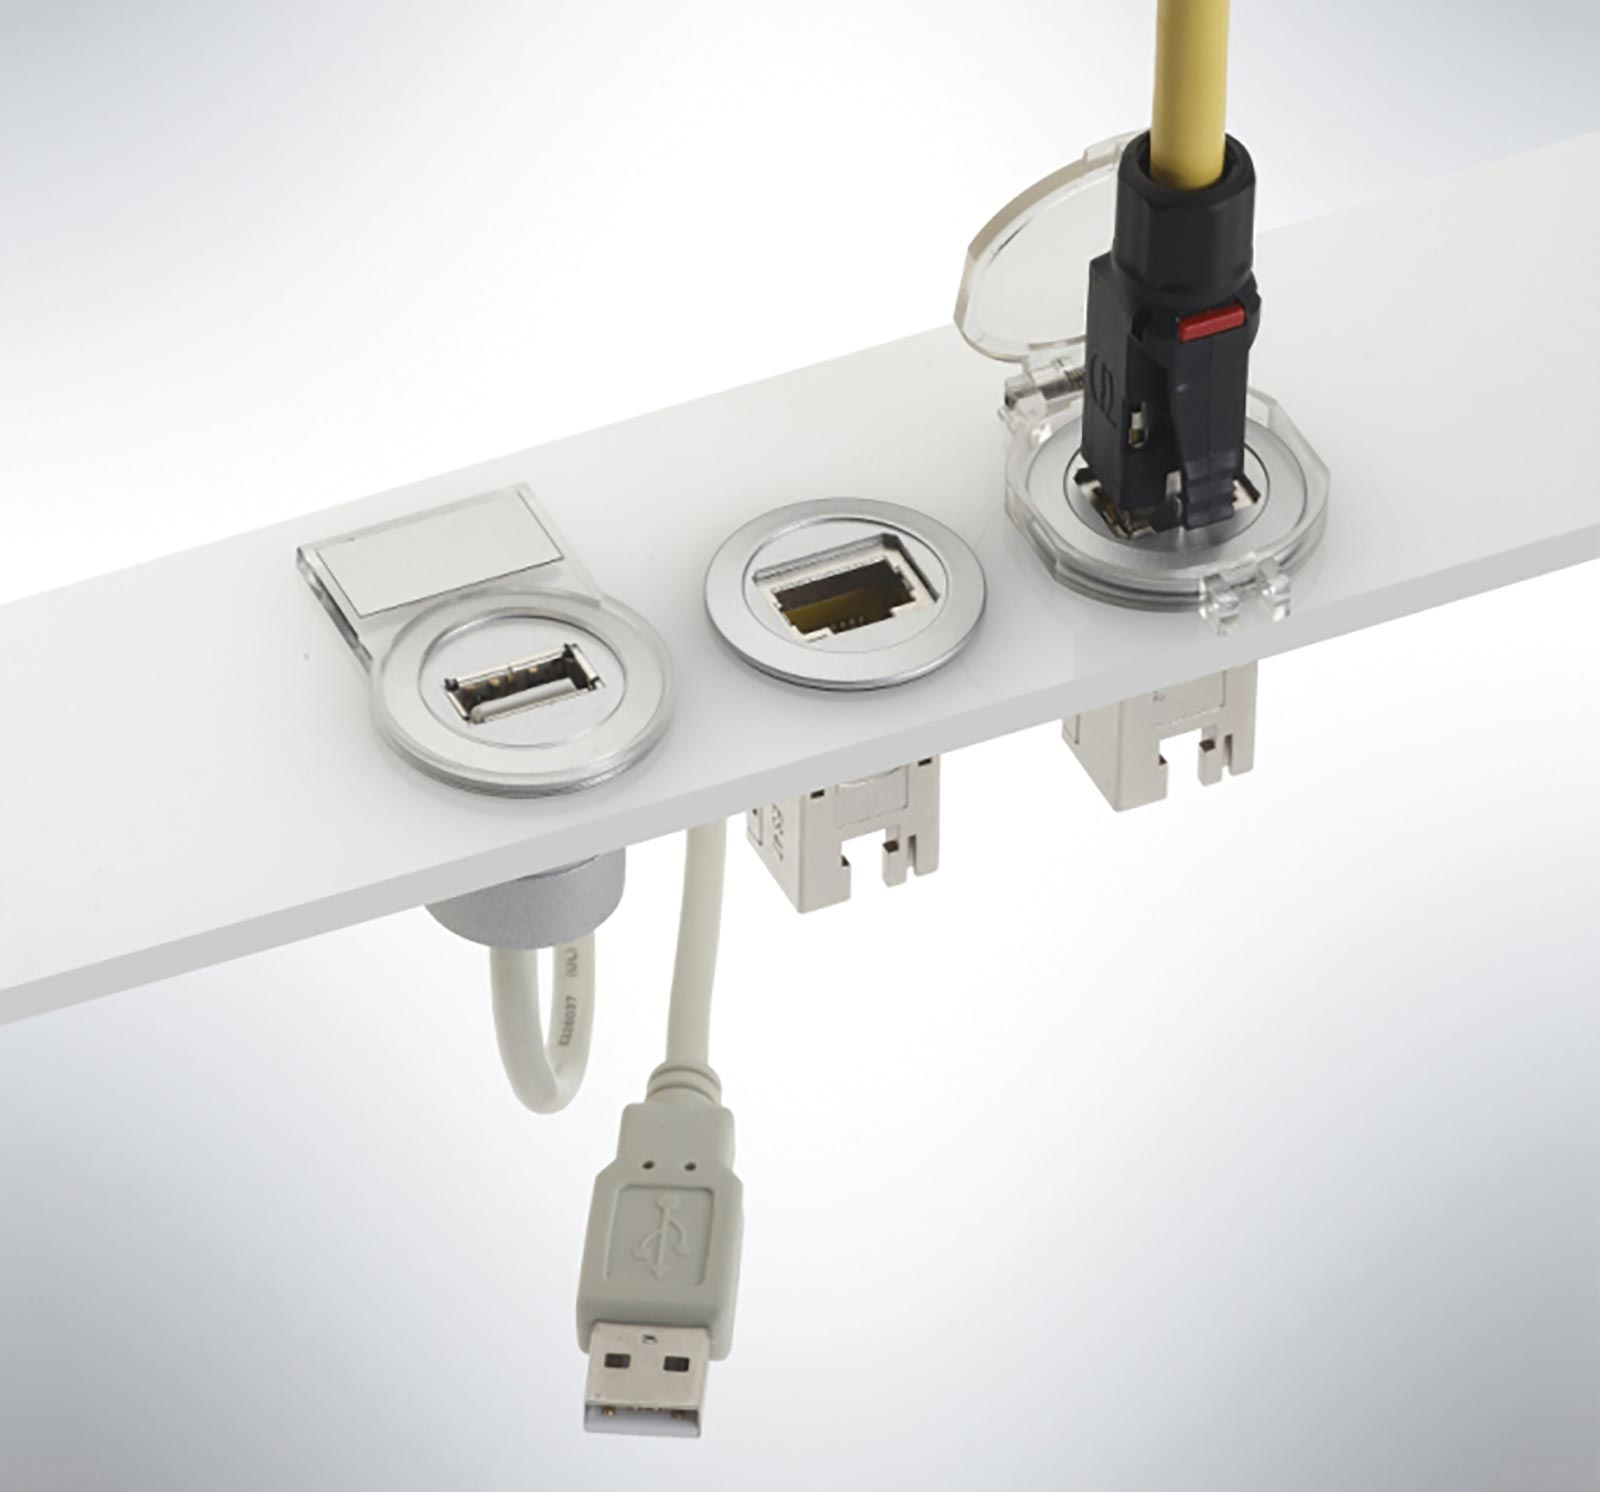 Interfaz de servicio har-port para Ethernet y USB